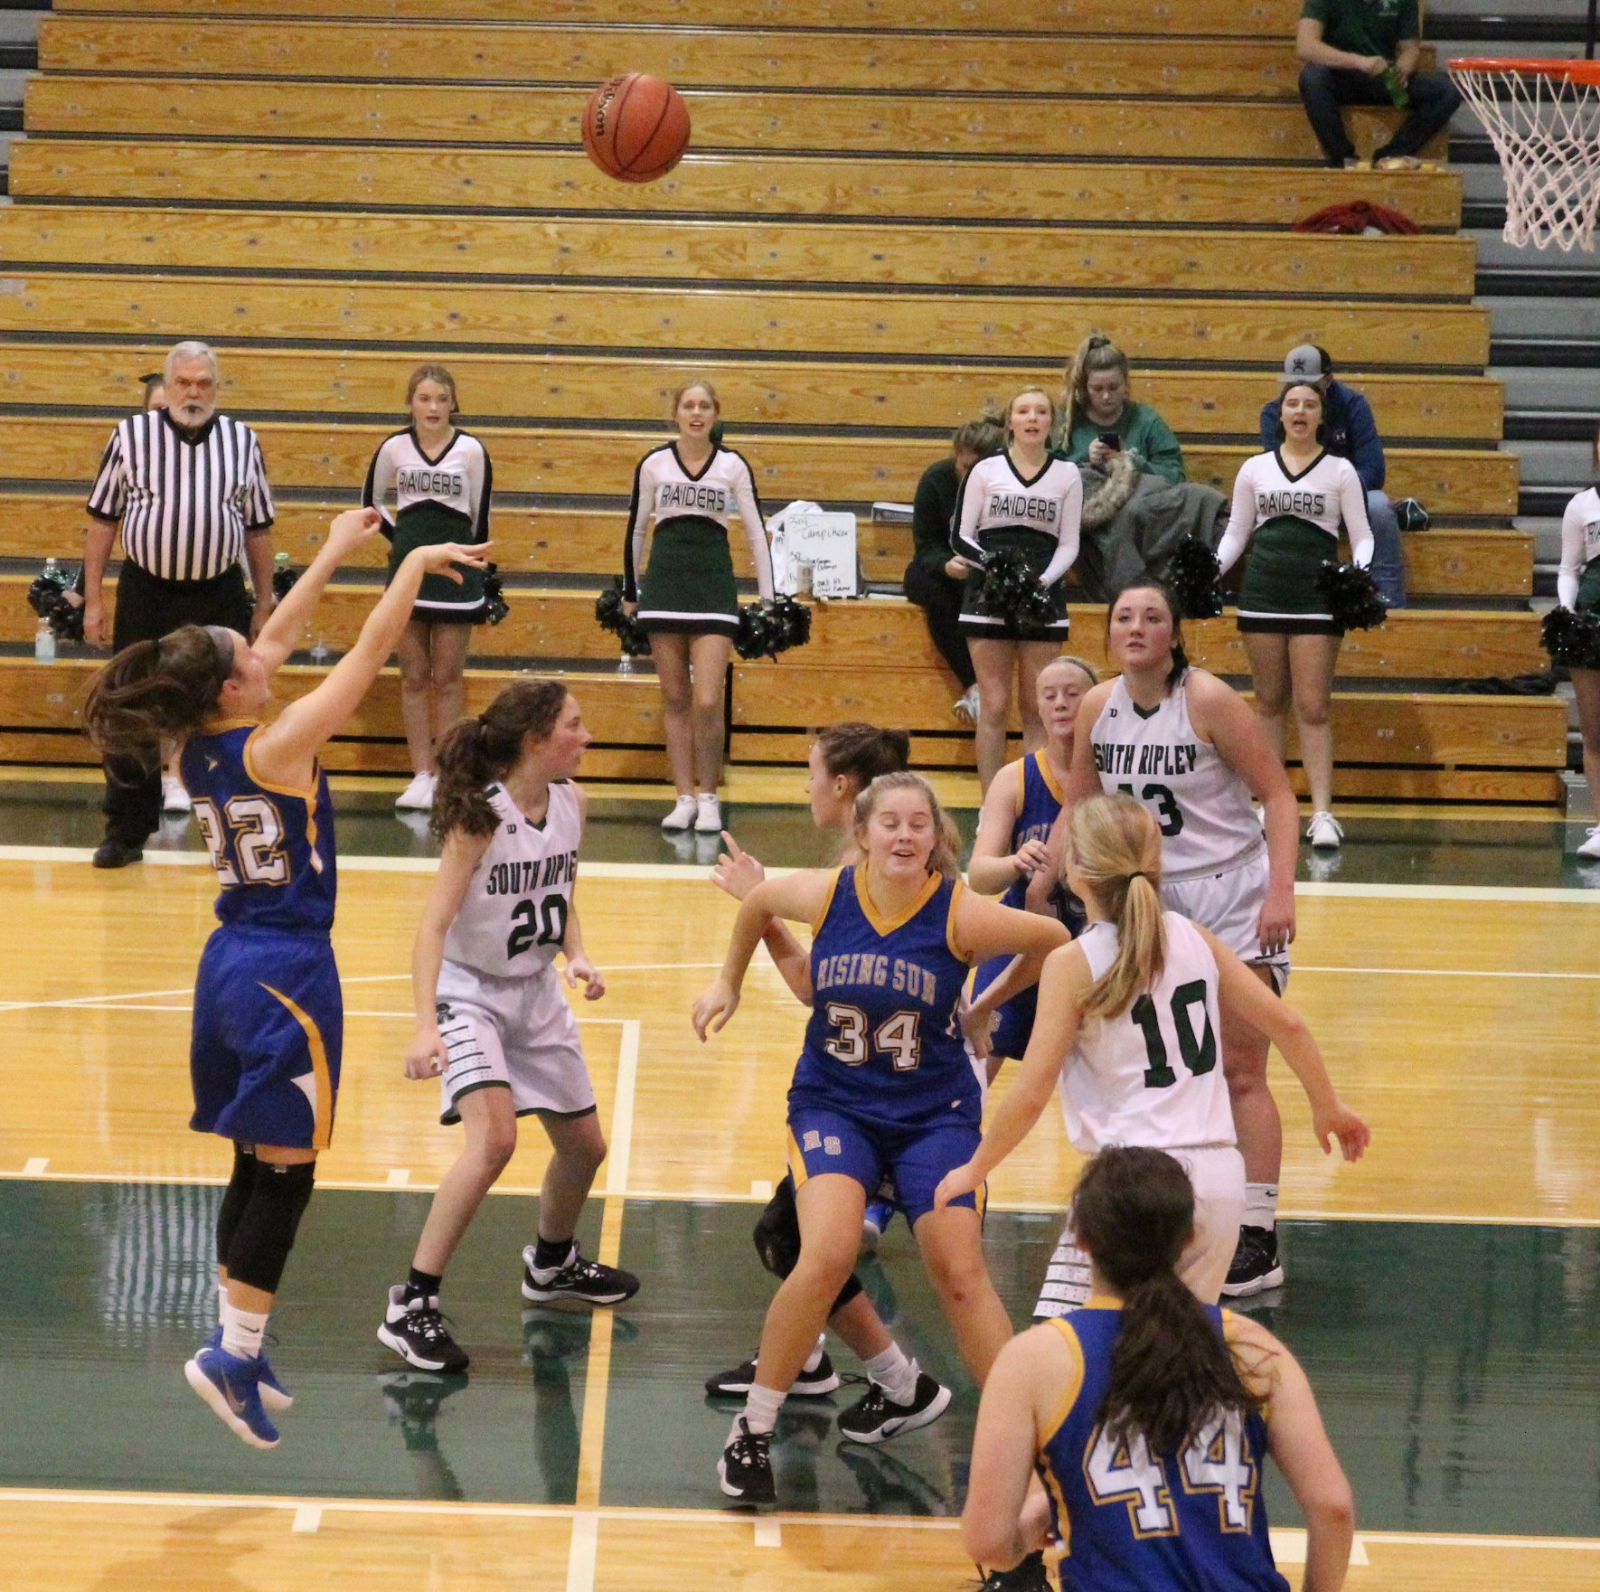 Lady Shiners Fall to South Ripley 53-35